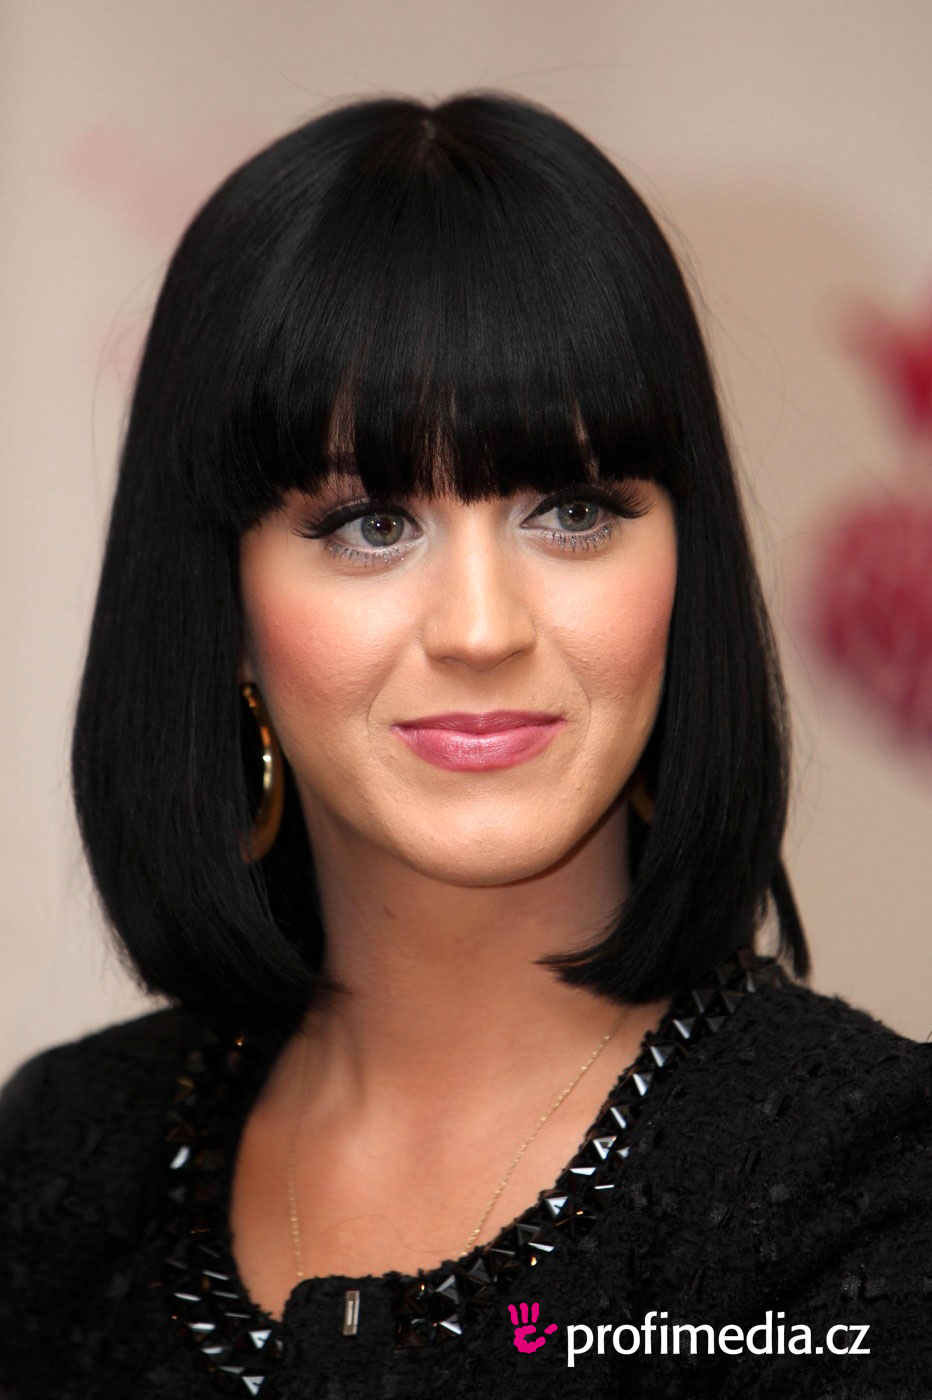 Účes celebrity - katy perry - katy perry